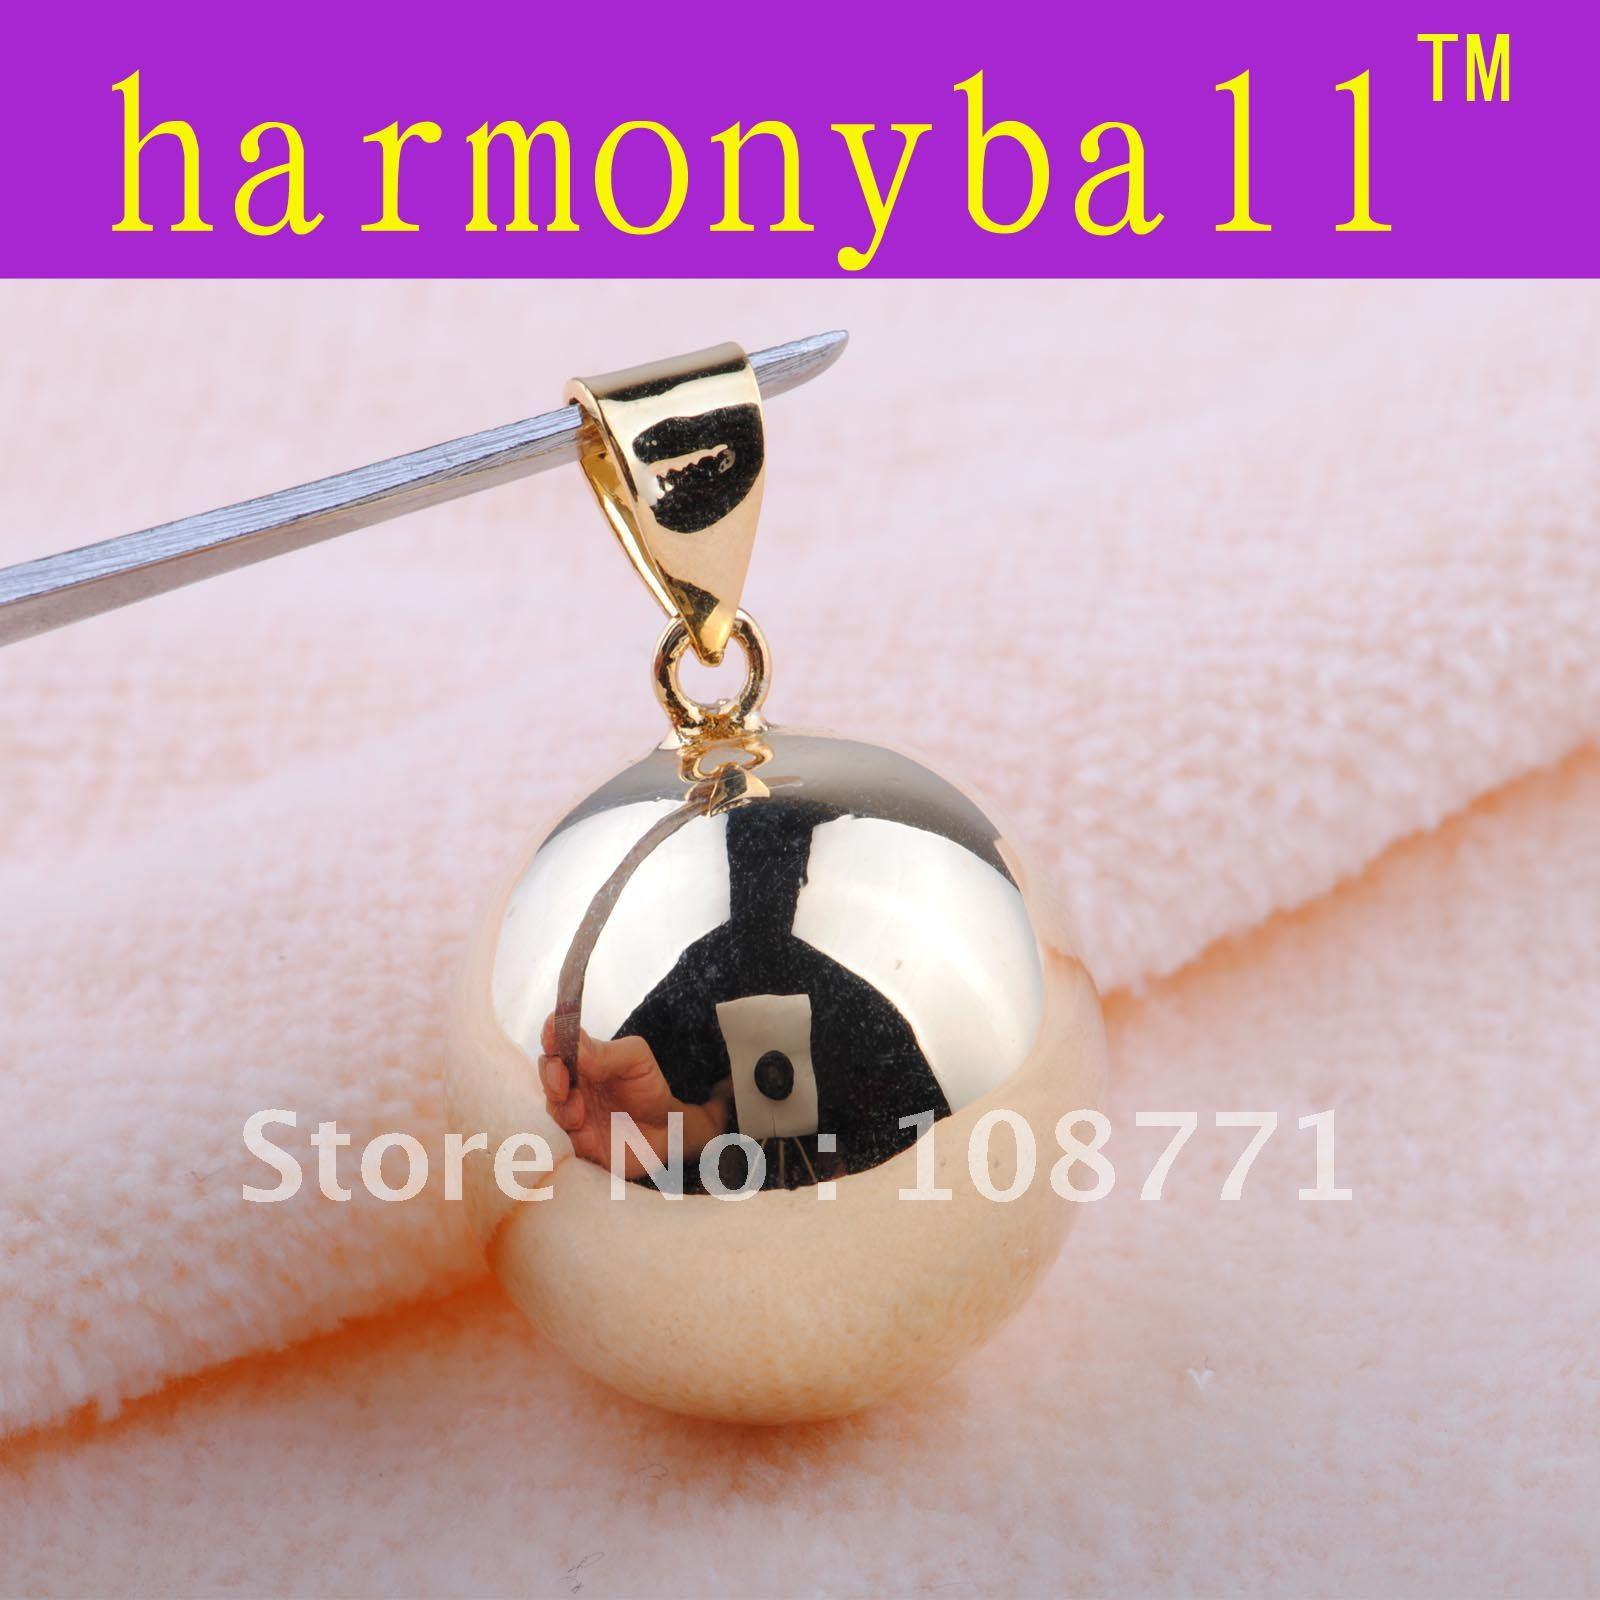 2018 gm017 18k gf gold pendant harmony ball bell ringing chime see larger image aloadofball Gallery